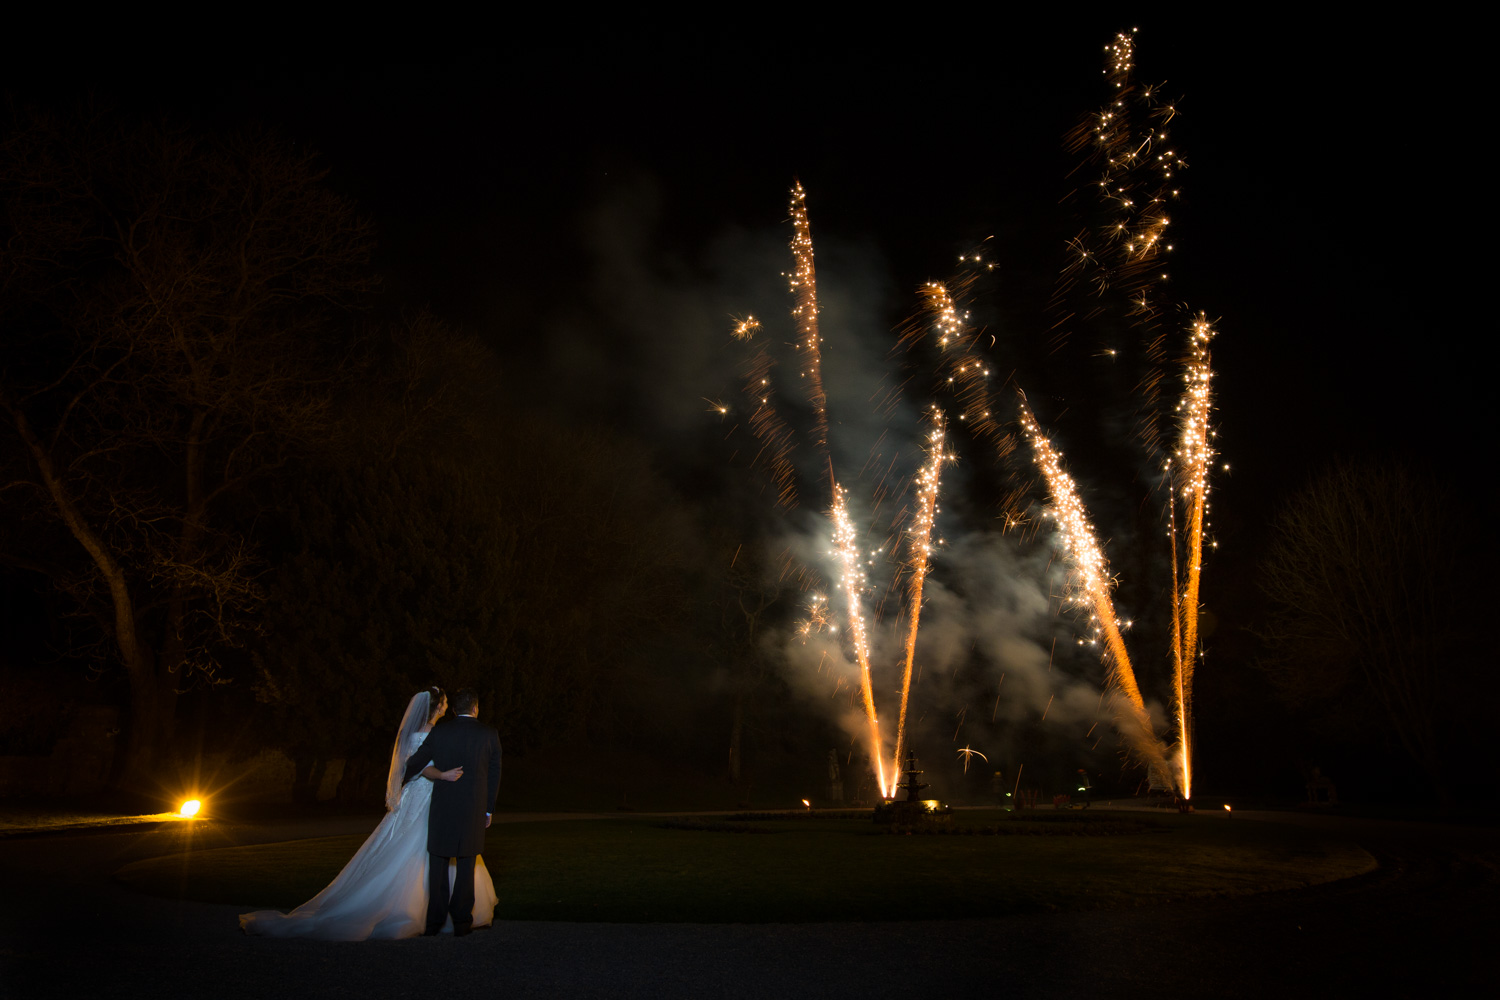 Mark_Barnes_Bristol_Wedding_Photography_Clearwell_Castle_Wedding_Photography_Darren_and_Amy-96.jpg